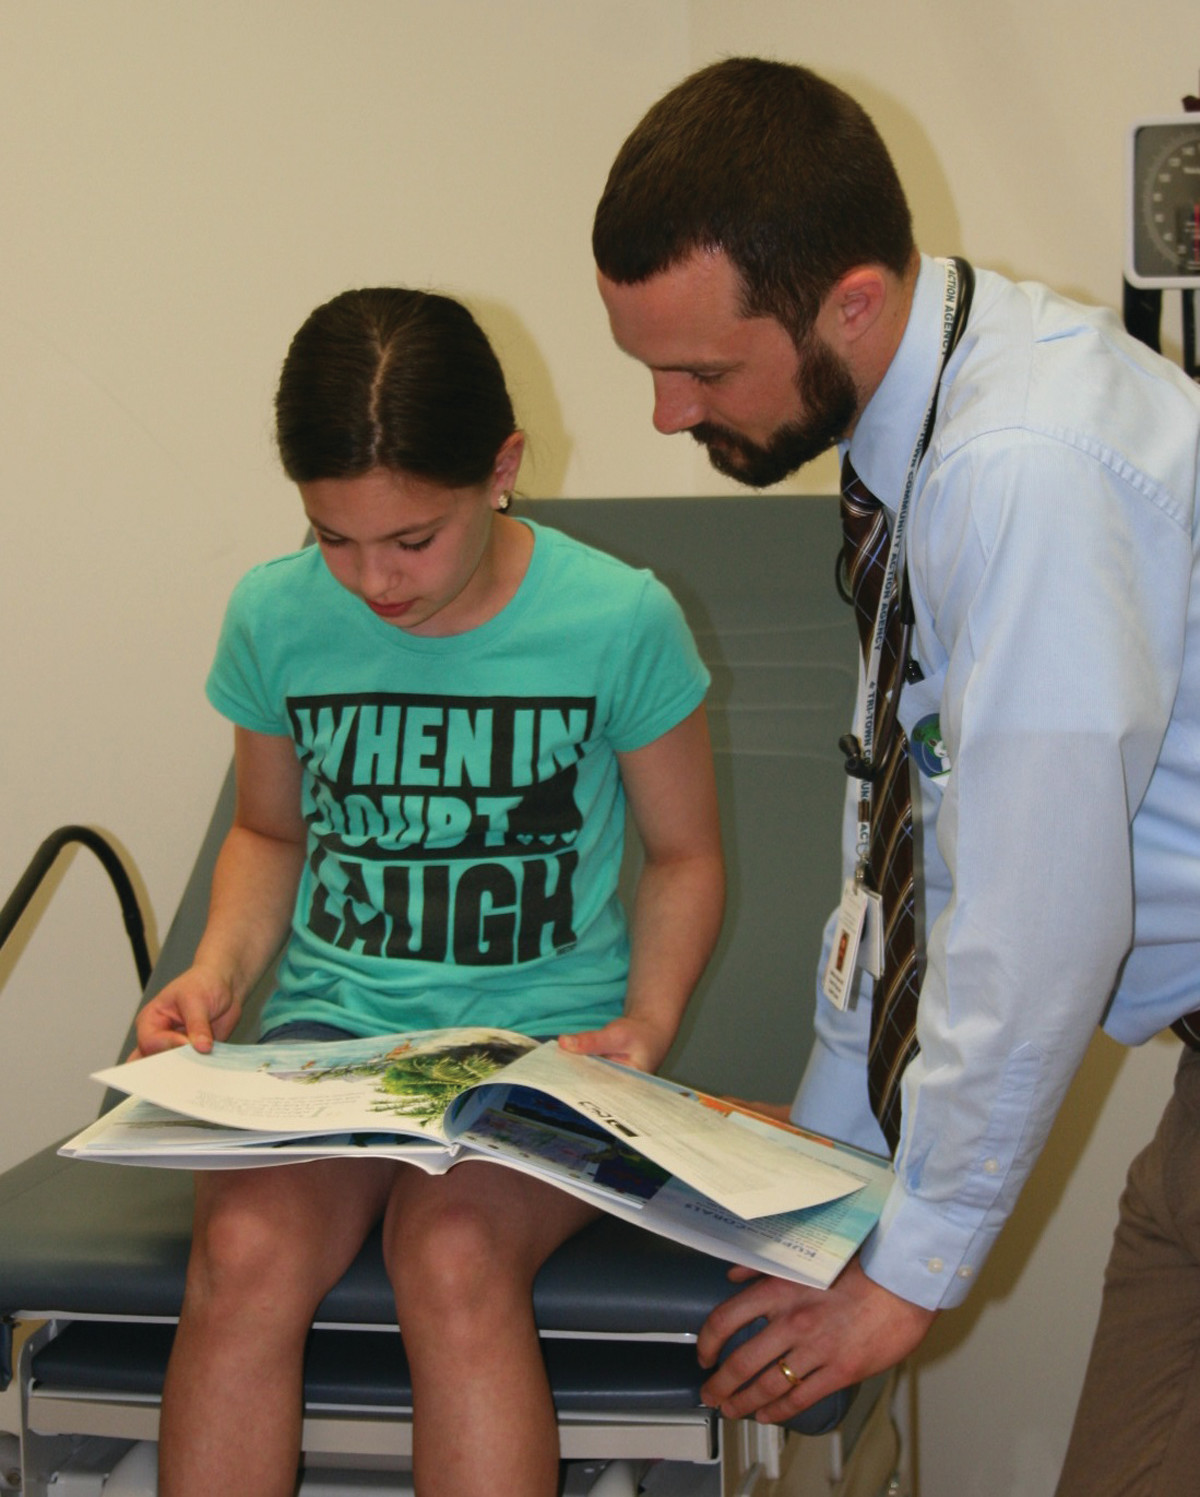 REACH OUT AND READ: Tri-Town Health Center Medica Director Dr. Matt Malek, right, reads along with Addison Papagolos, who attended the Reach Out and Read Rhode Island story time on May 25 in North Providence.